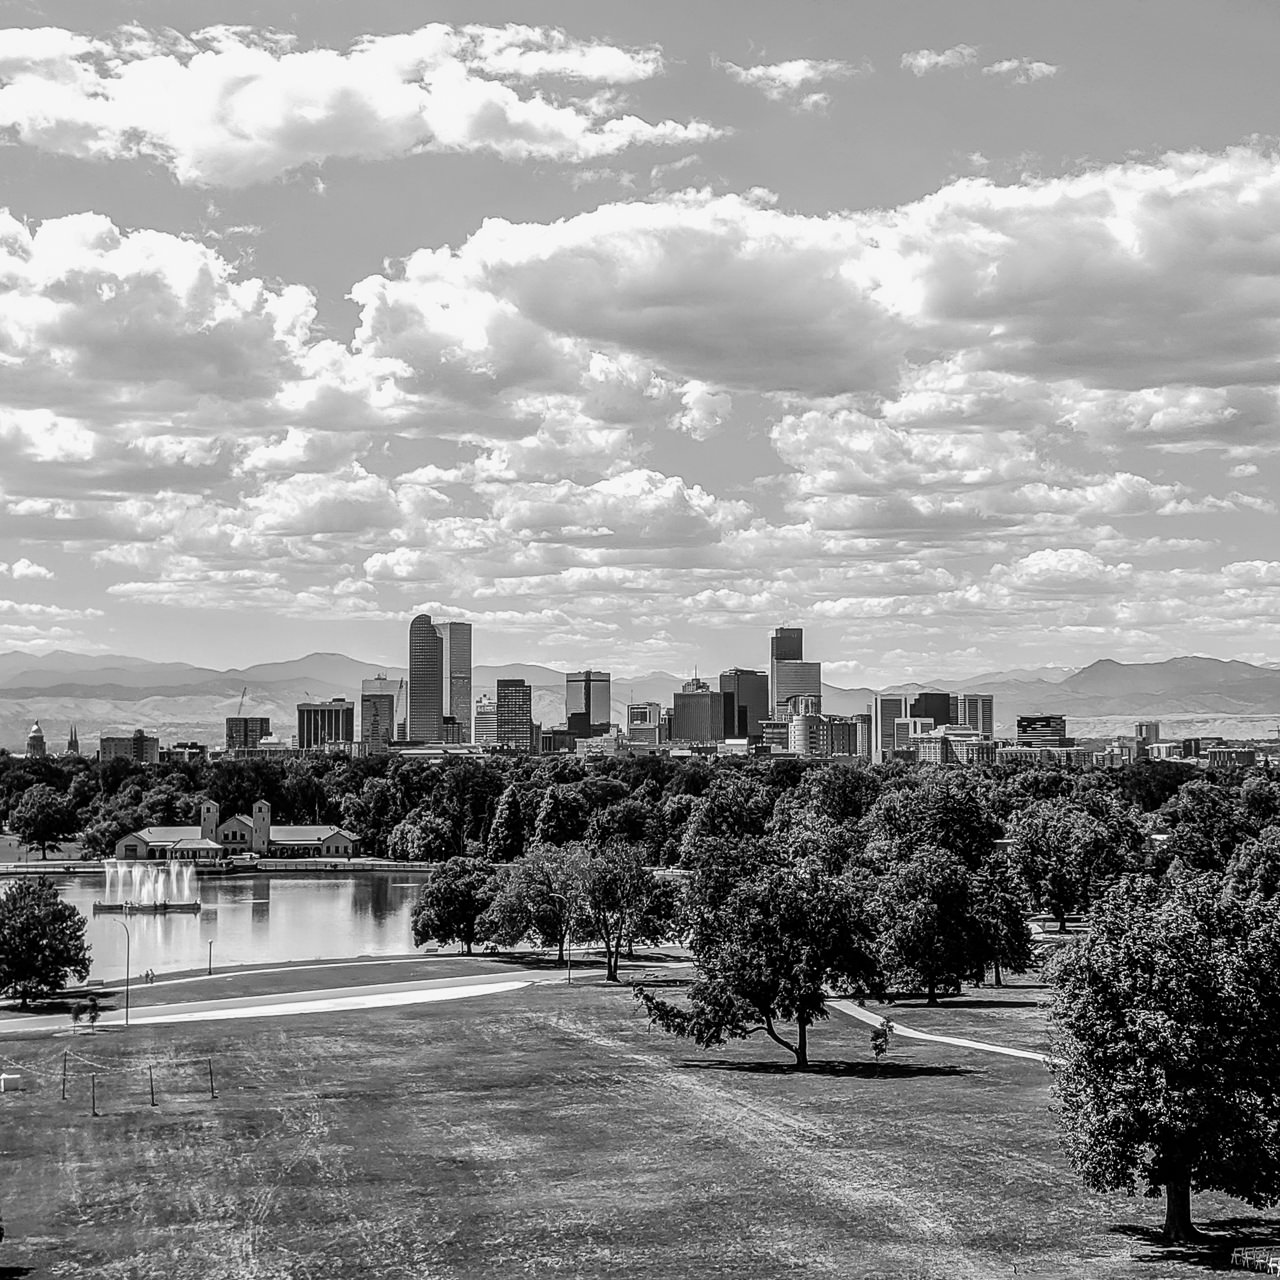 Day 240 - 365 Day B&W Photo Challenge - The Denver skyline viewed from City Park on a Summer Day. - Google Pixel 3